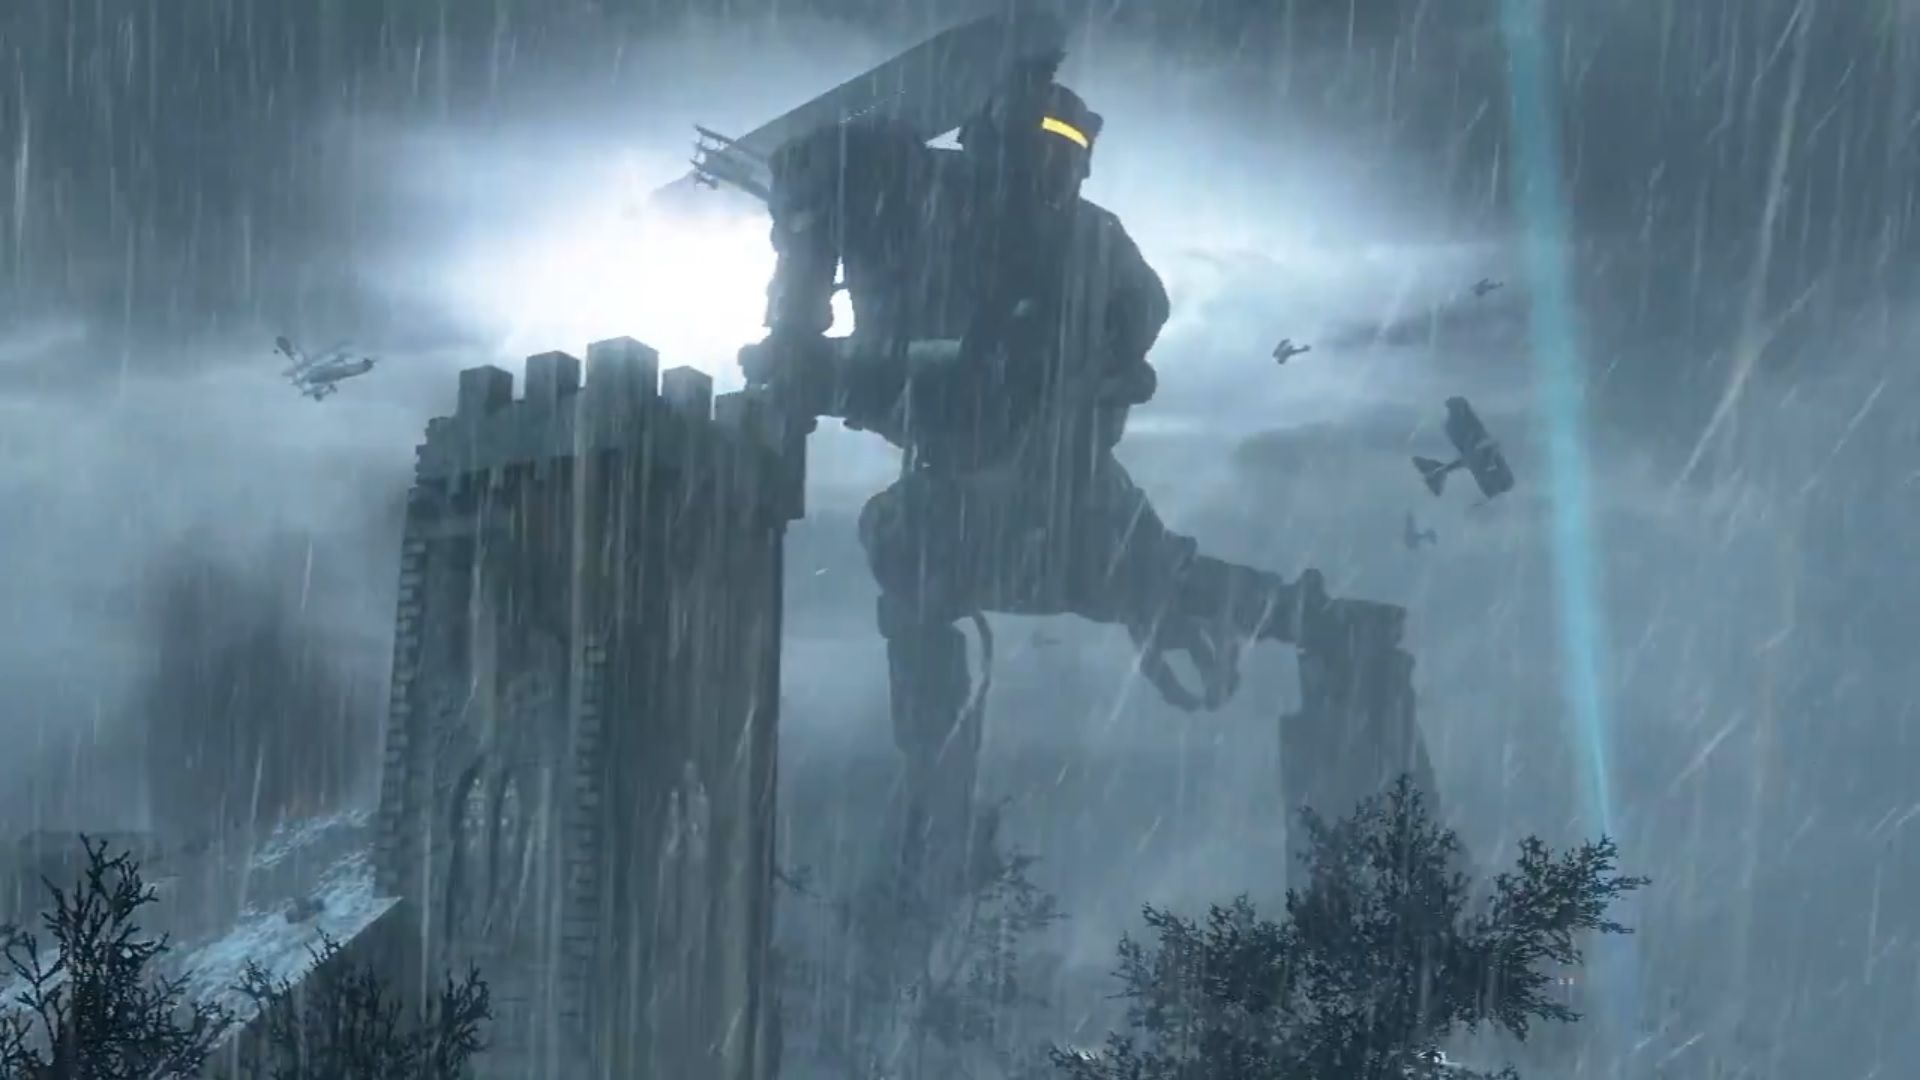 Call Of Duty Black Ops 2 Apocalypse Dlc Preview Video Shows Giant Robots Gameplay Black Ops Call Of Duty Zombies Black Ops Zombies